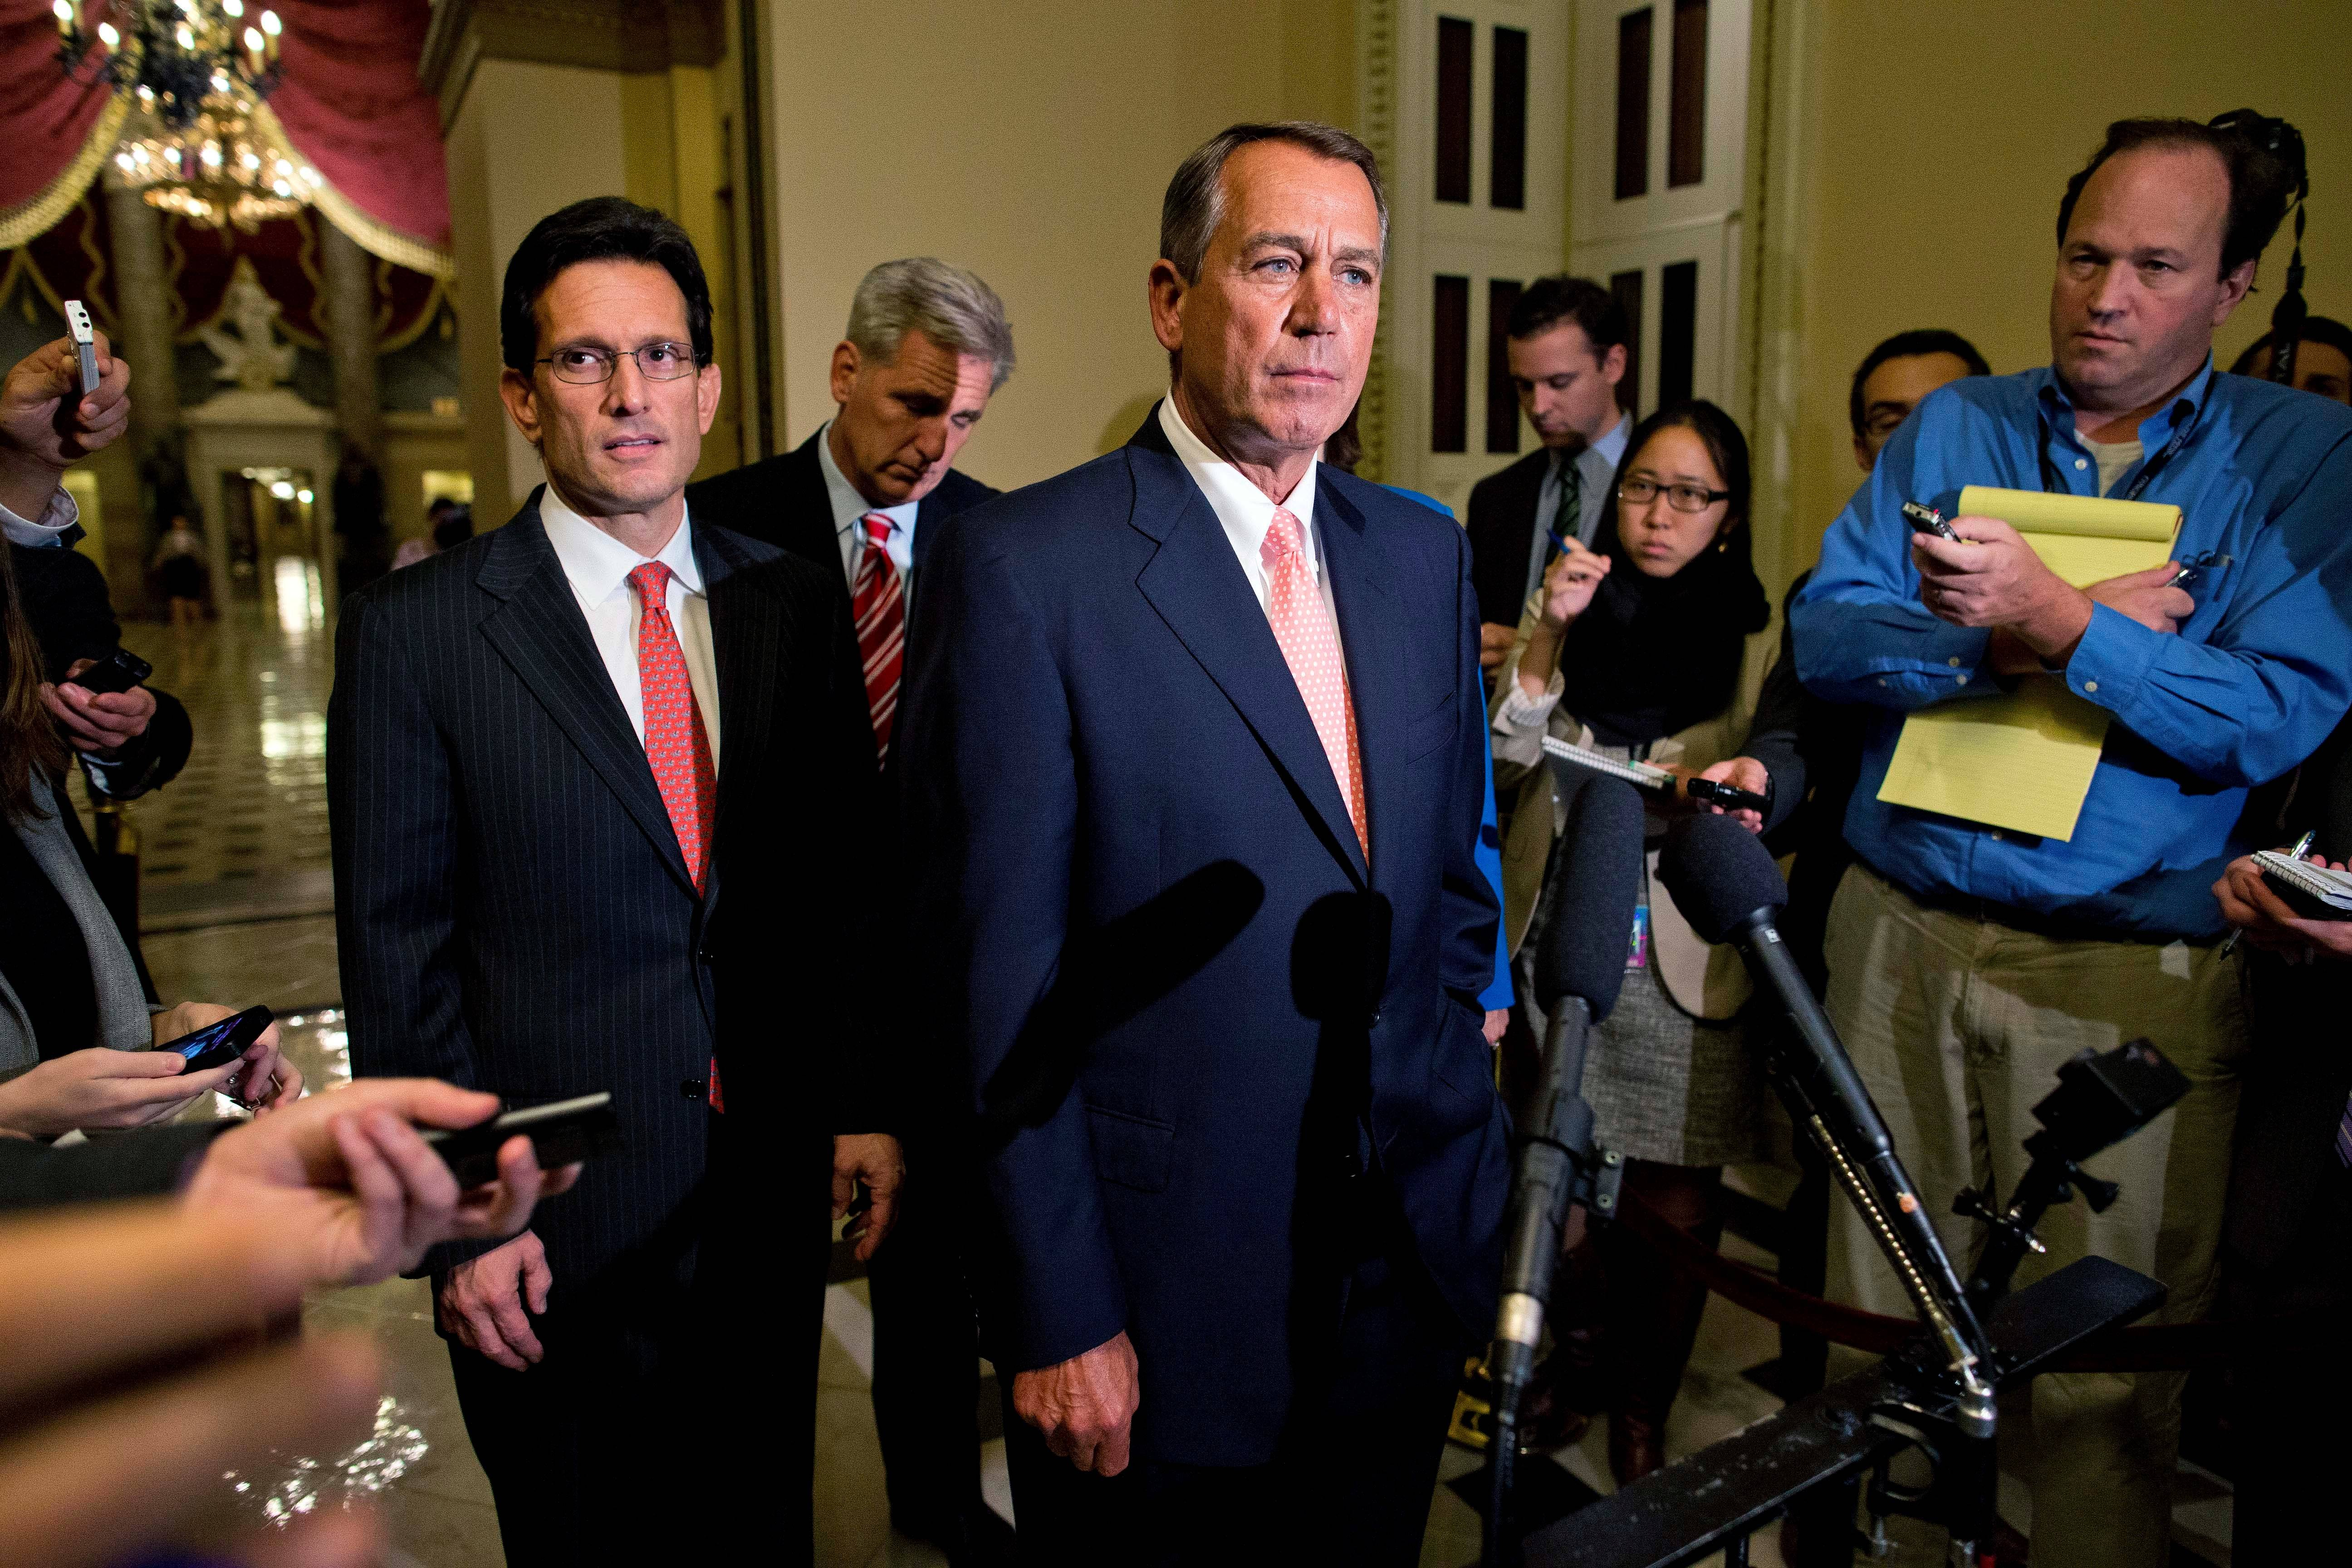 House Majority Leader Rep. Eric Cantor, R-Va., left, and House Majority Whip Rep. Kevin McCarthy, R-Calif., rear center, look on as Speaker of the House Rep. John Boehner, R-Ohio, pauses during a news conference on Capitol Hill  Tuesday.